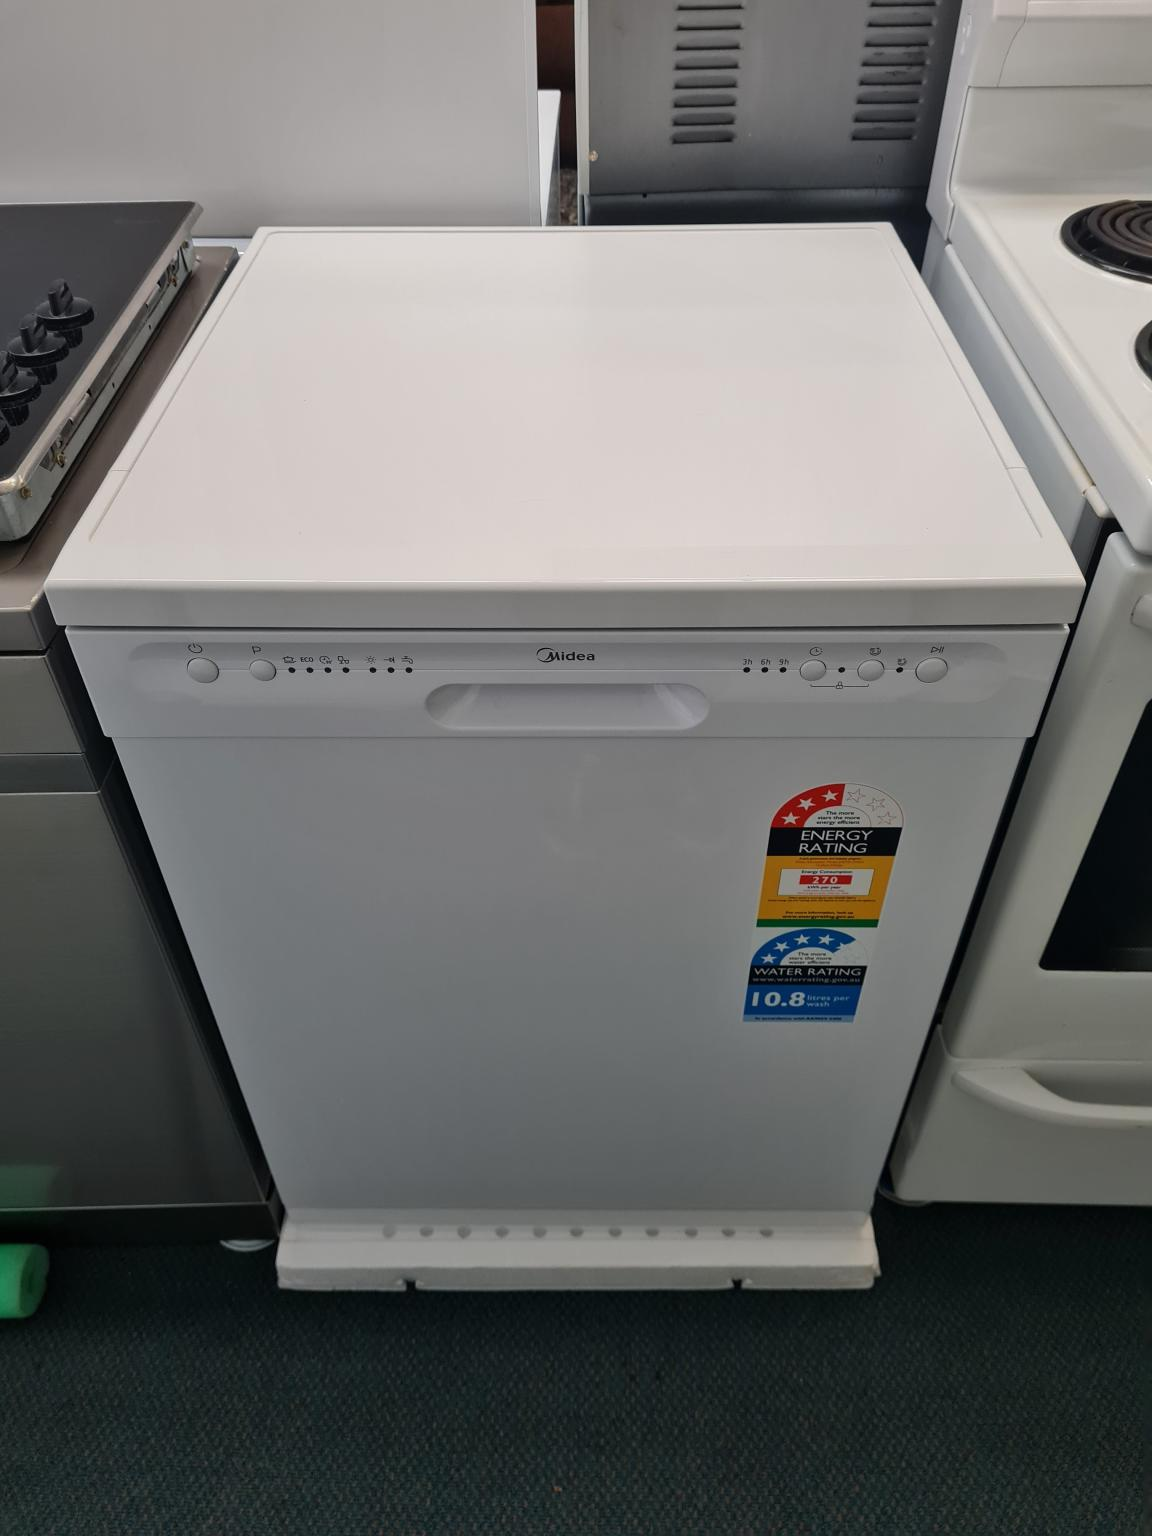 Brand New Midea 12 Place Setting Dishwasher White JHDW123WH